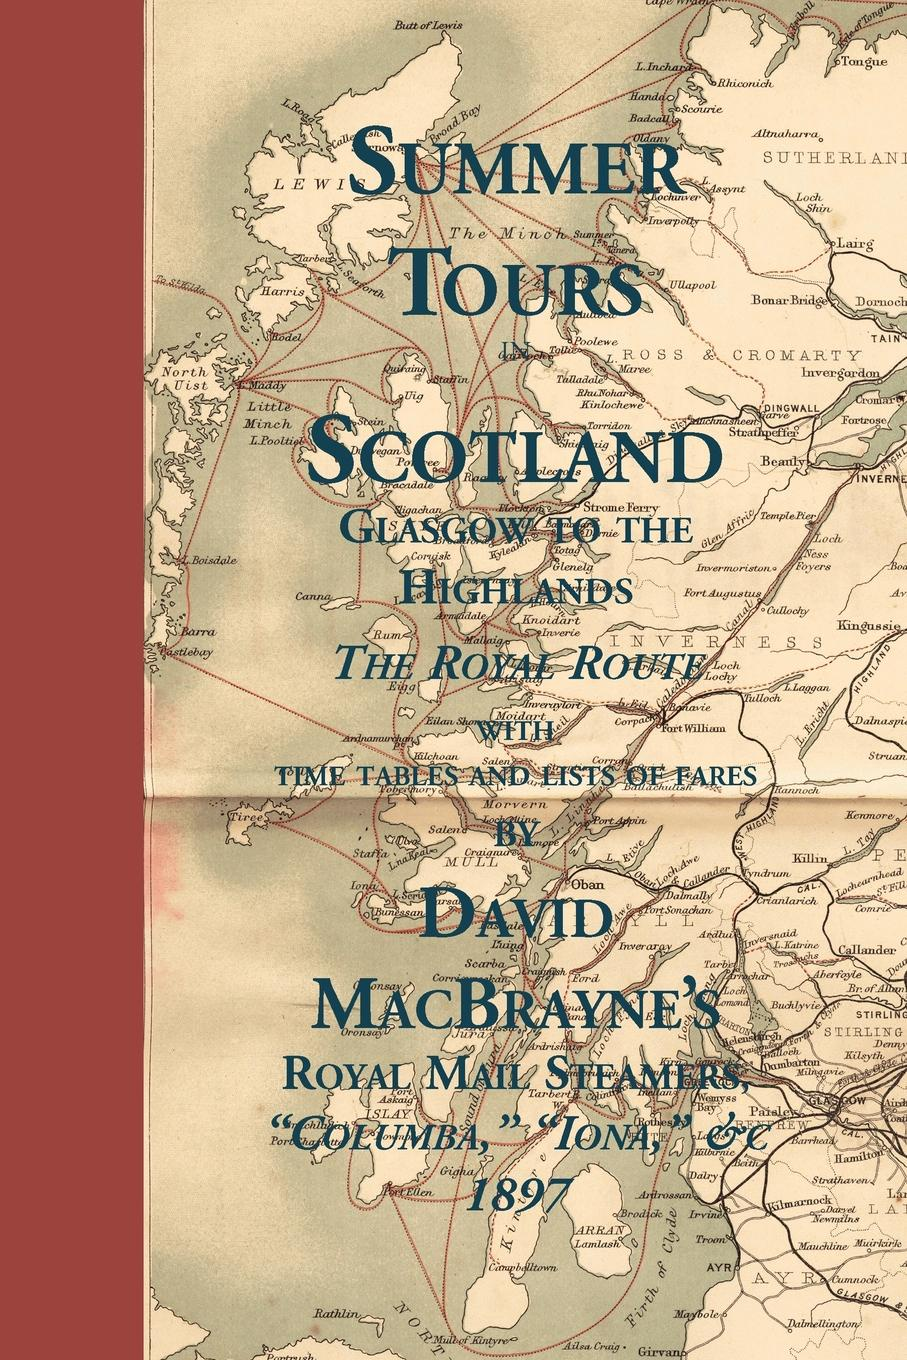 Summer Tours in Scotland. Glasgow to the Highlands: The Royal Route, 1897 felix j palma the map of time and the turn of the screw